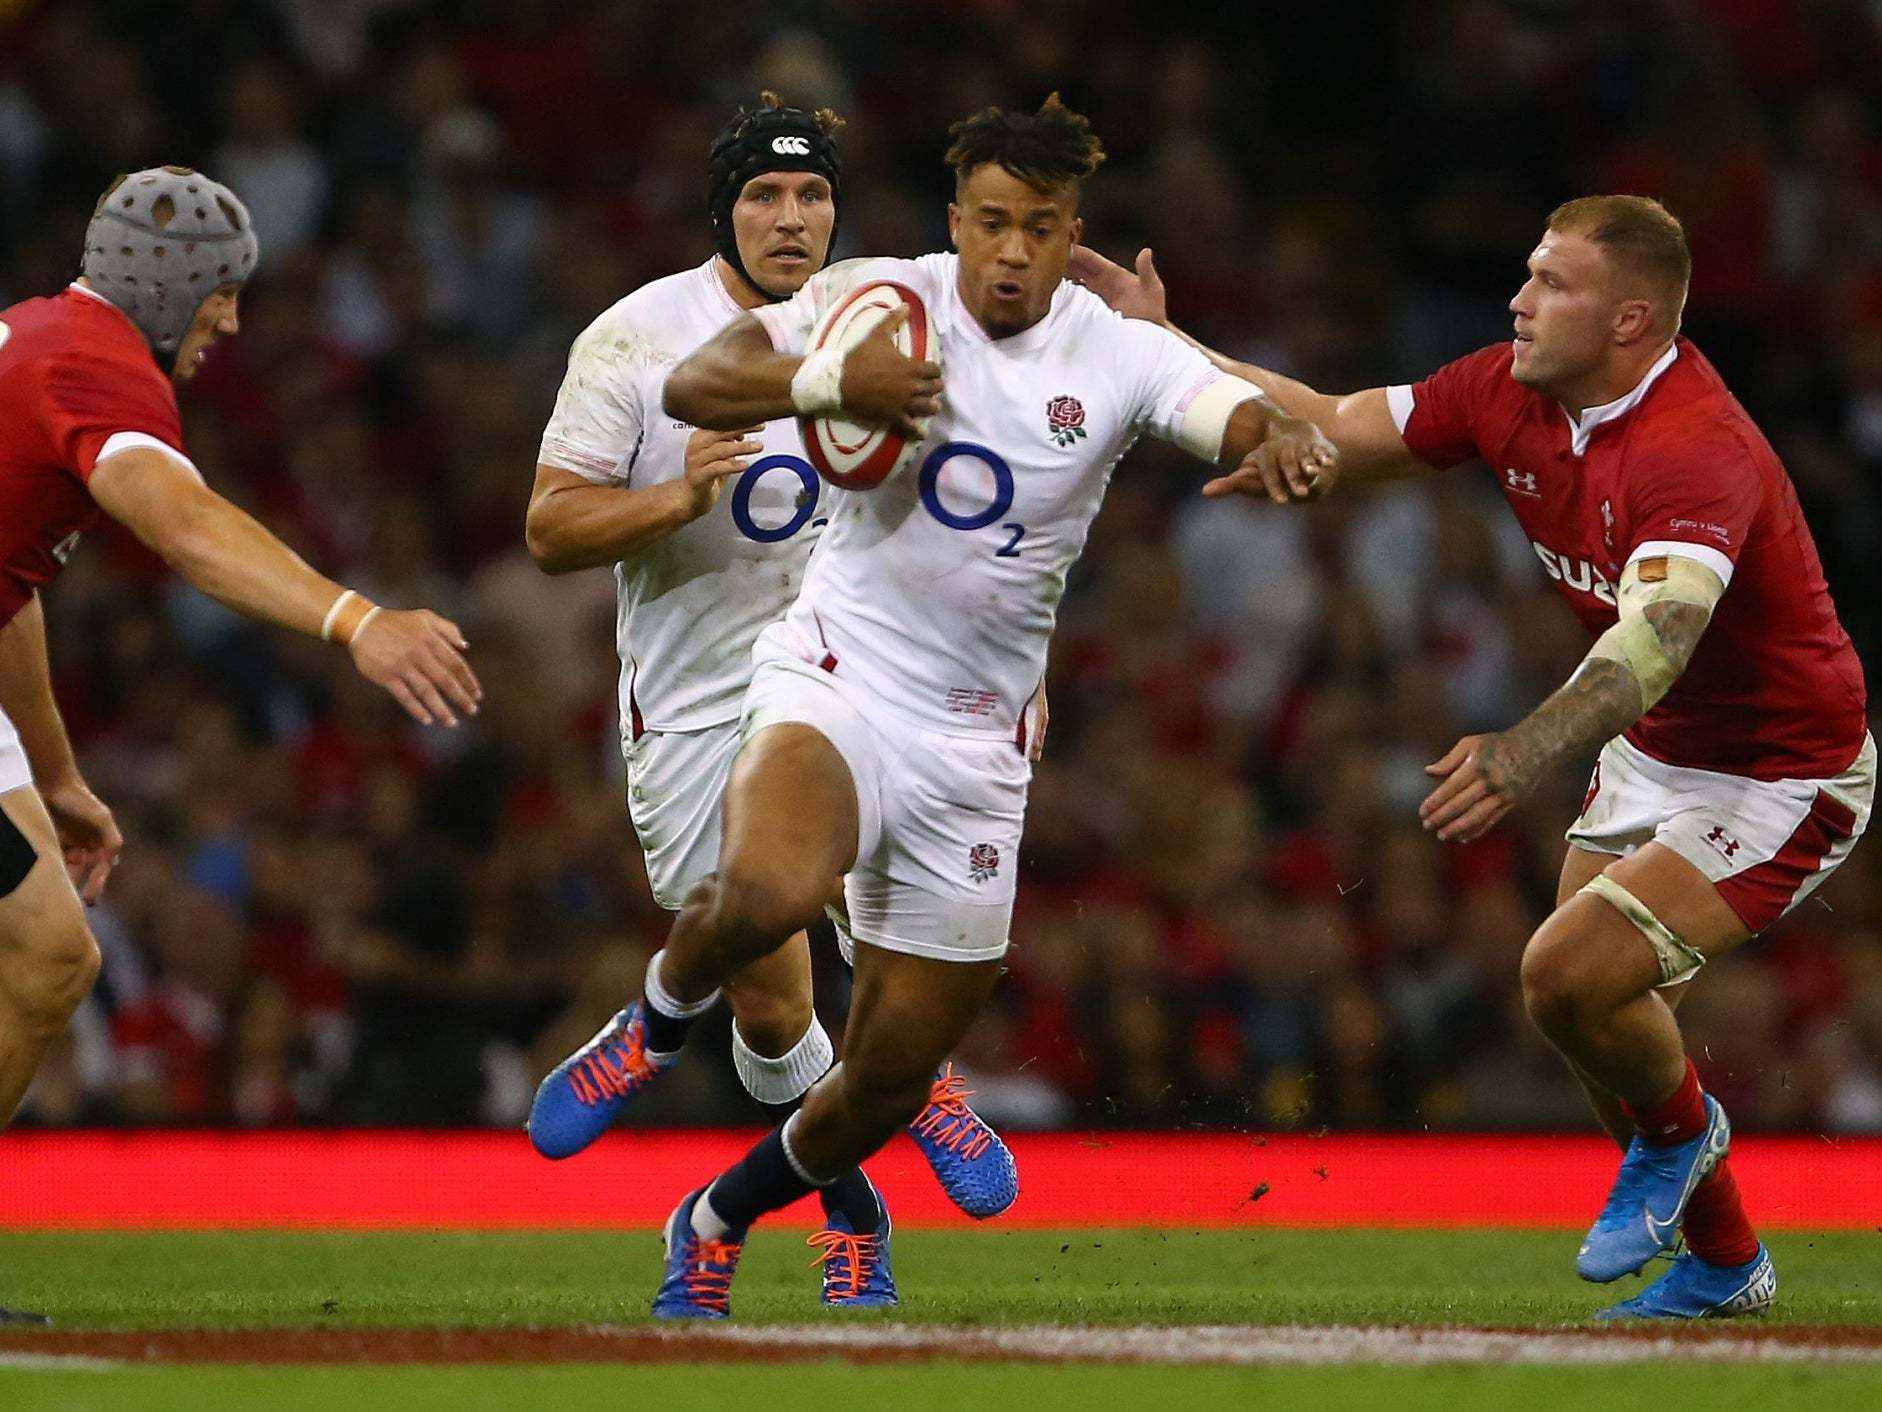 Rugby World Cup 2019: What have we learned from England's warm-up matches so far?